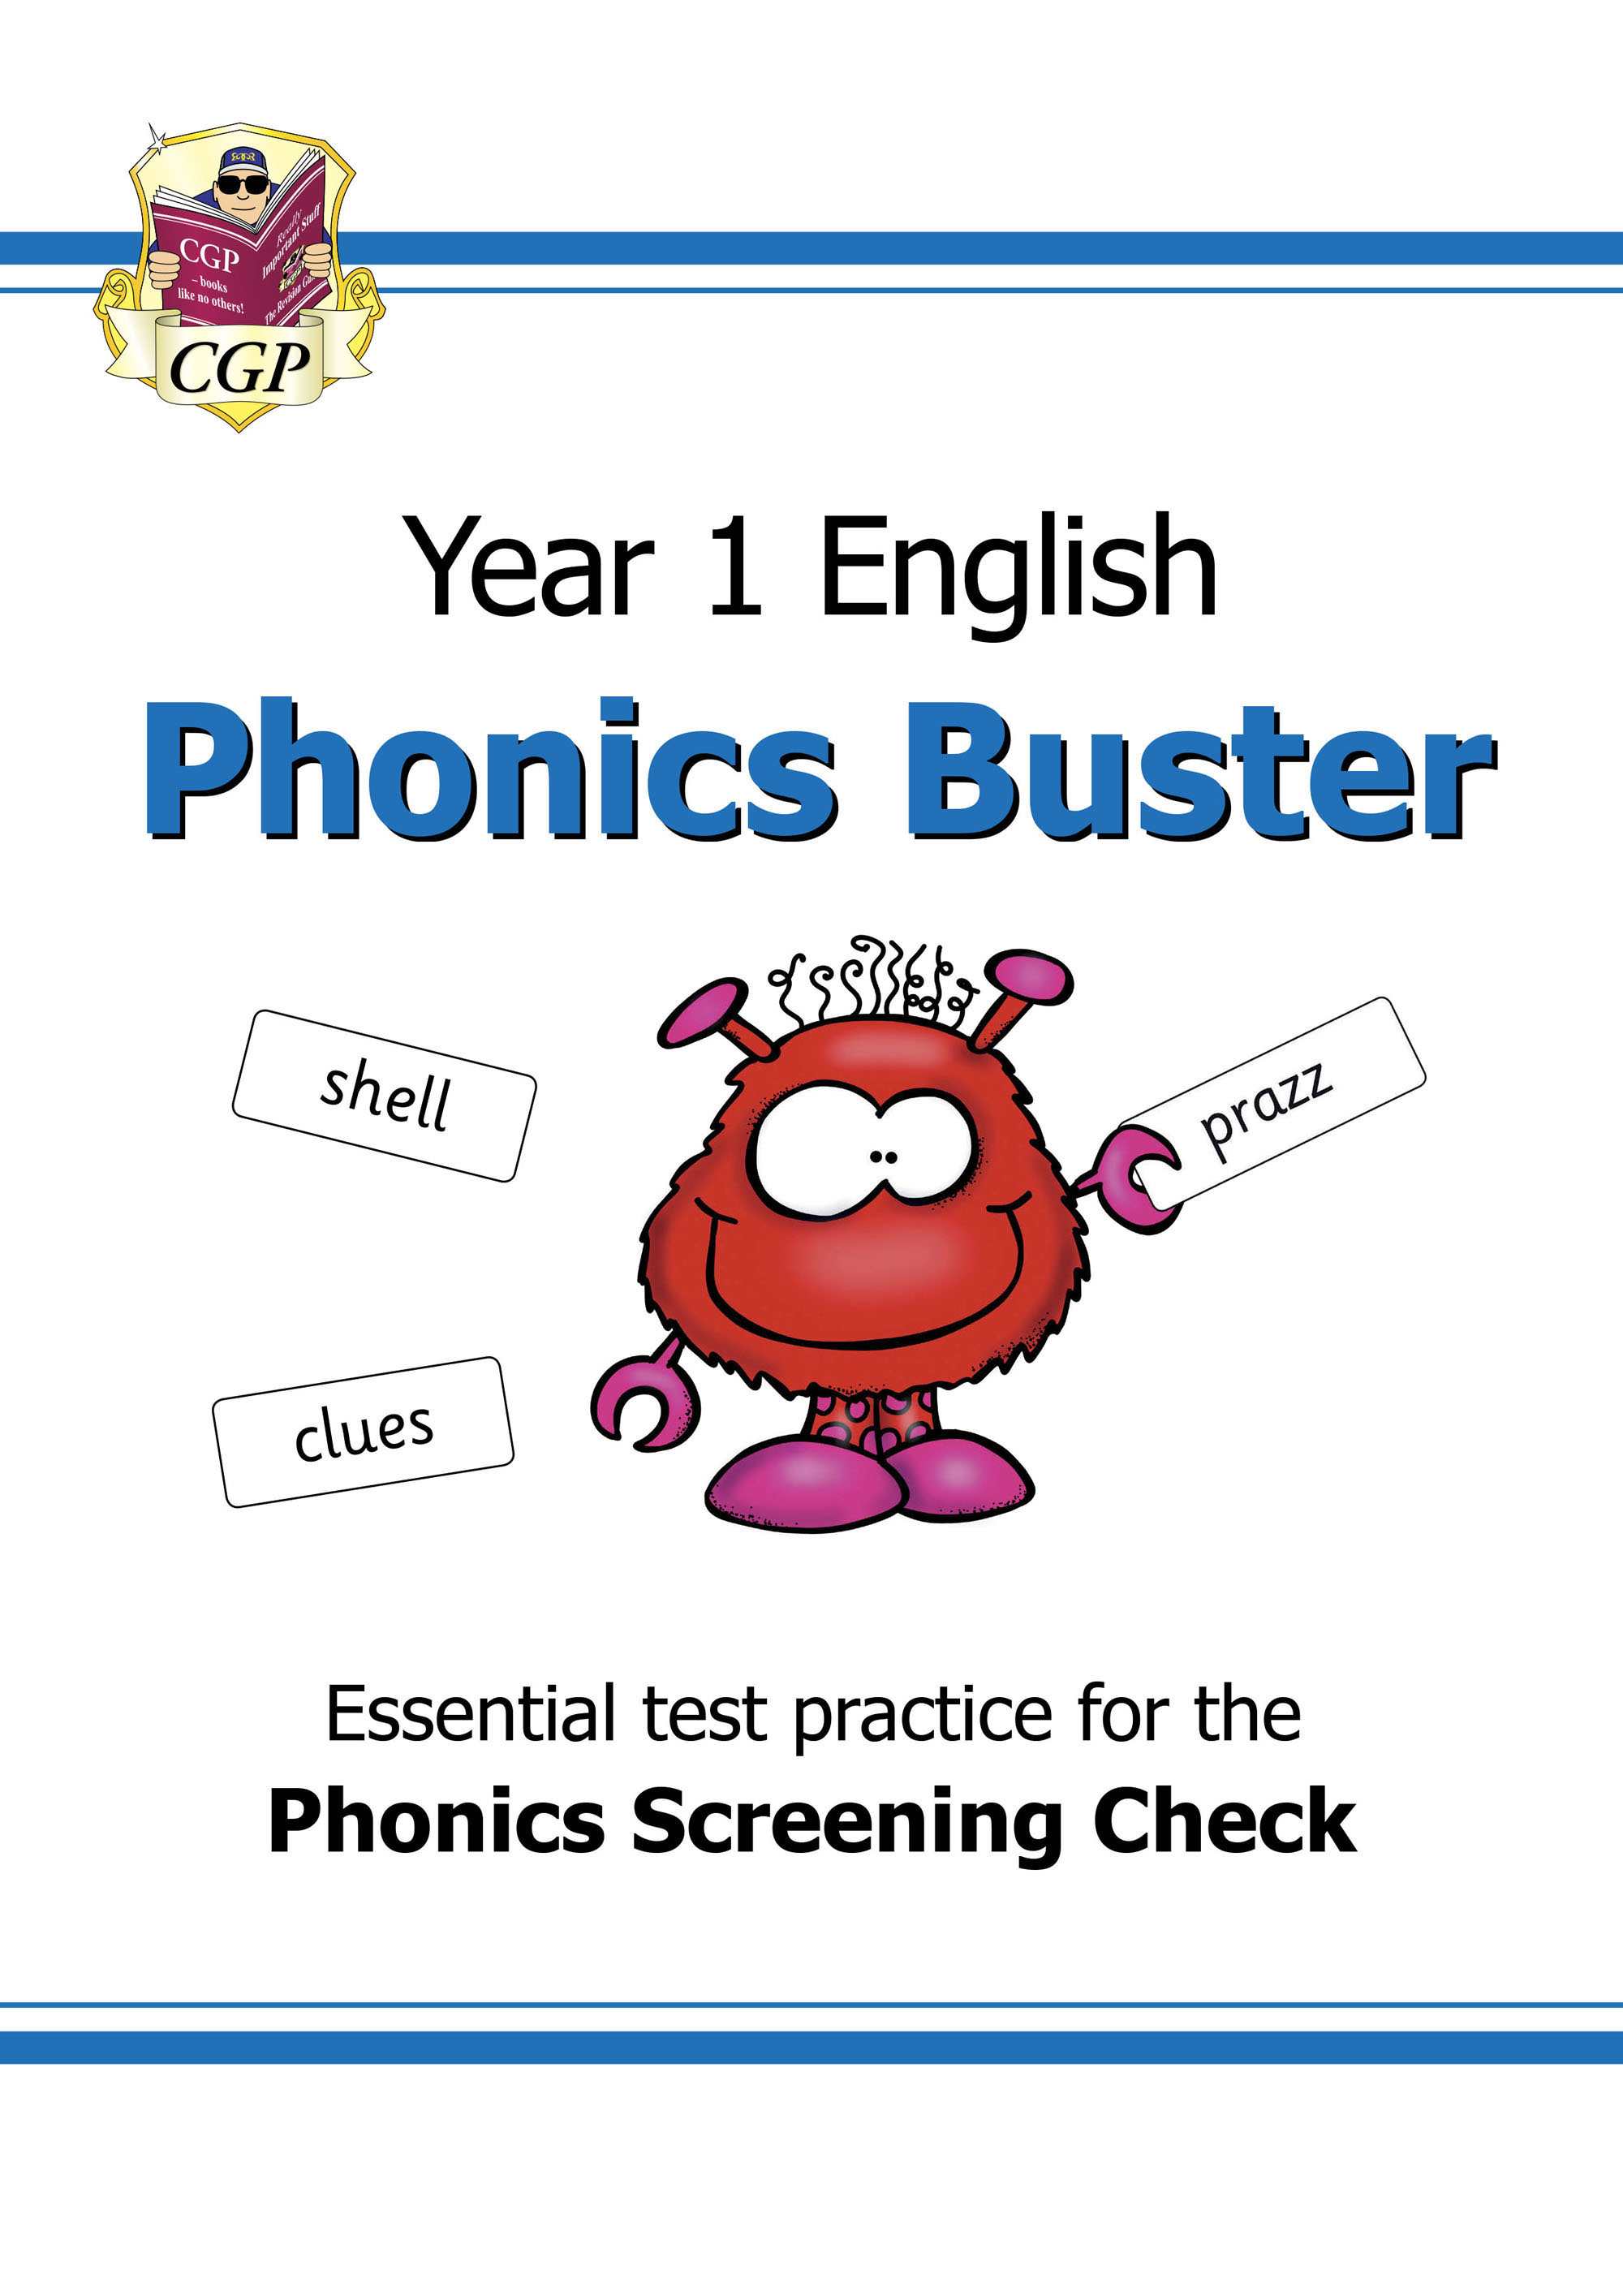 E1O11DK - New KS1 English Phonics Buster - for the Phonics Screening Check in Year 1